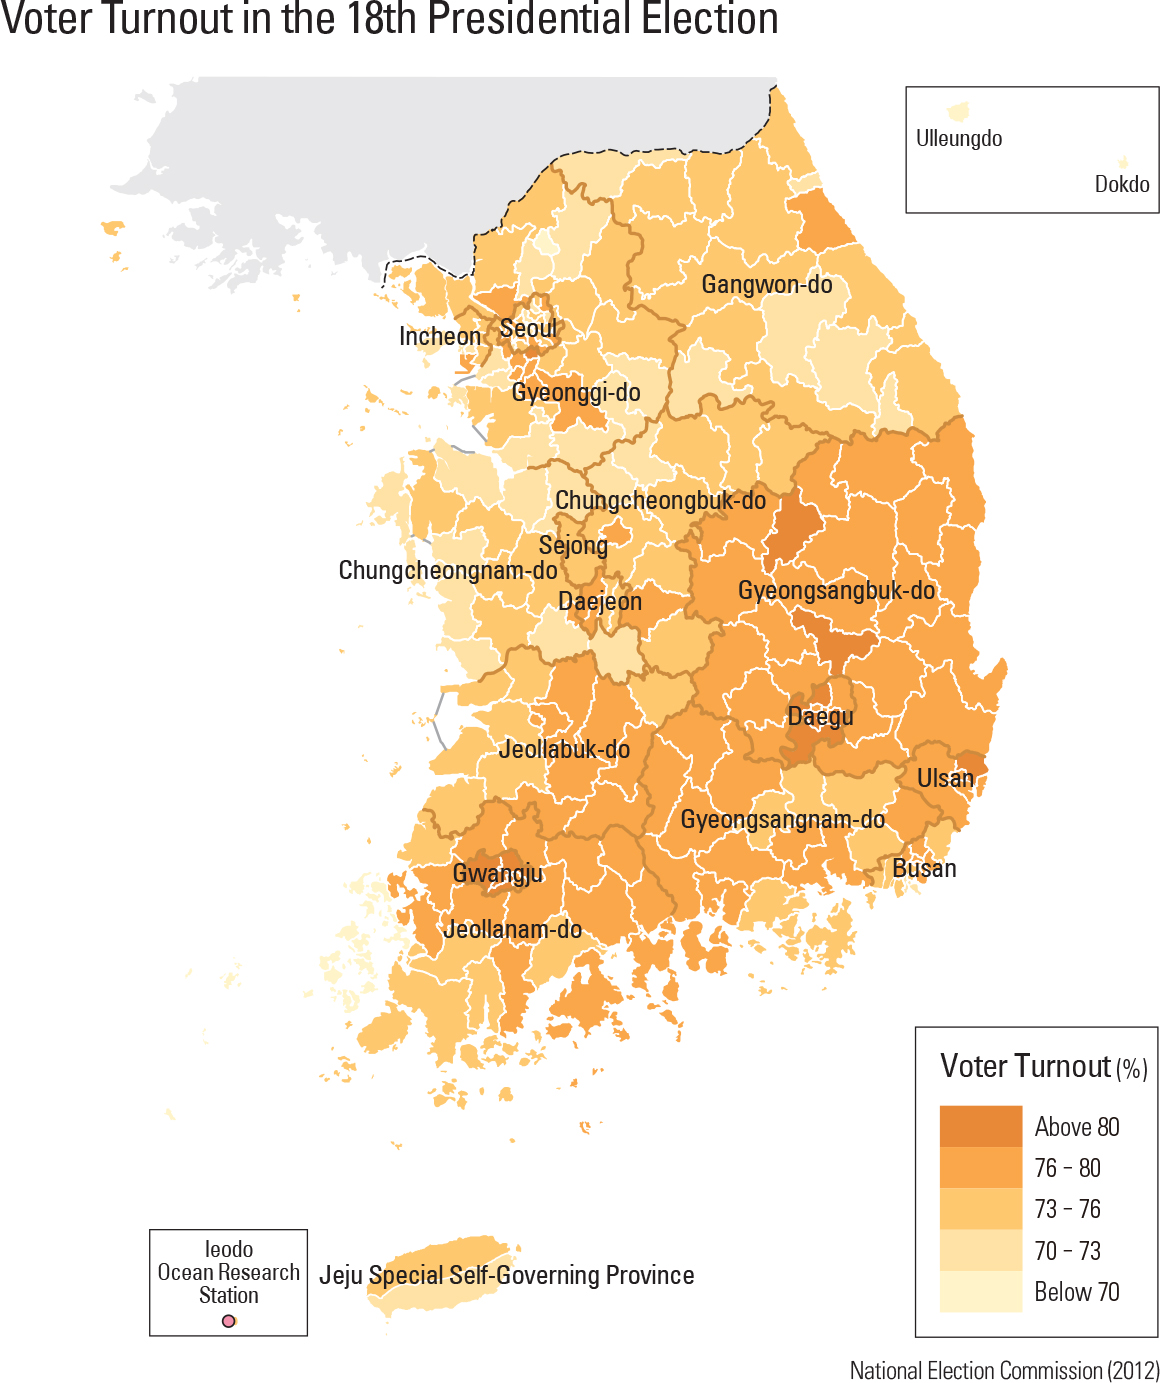 Voter Turnout in the 18th Presidential Election